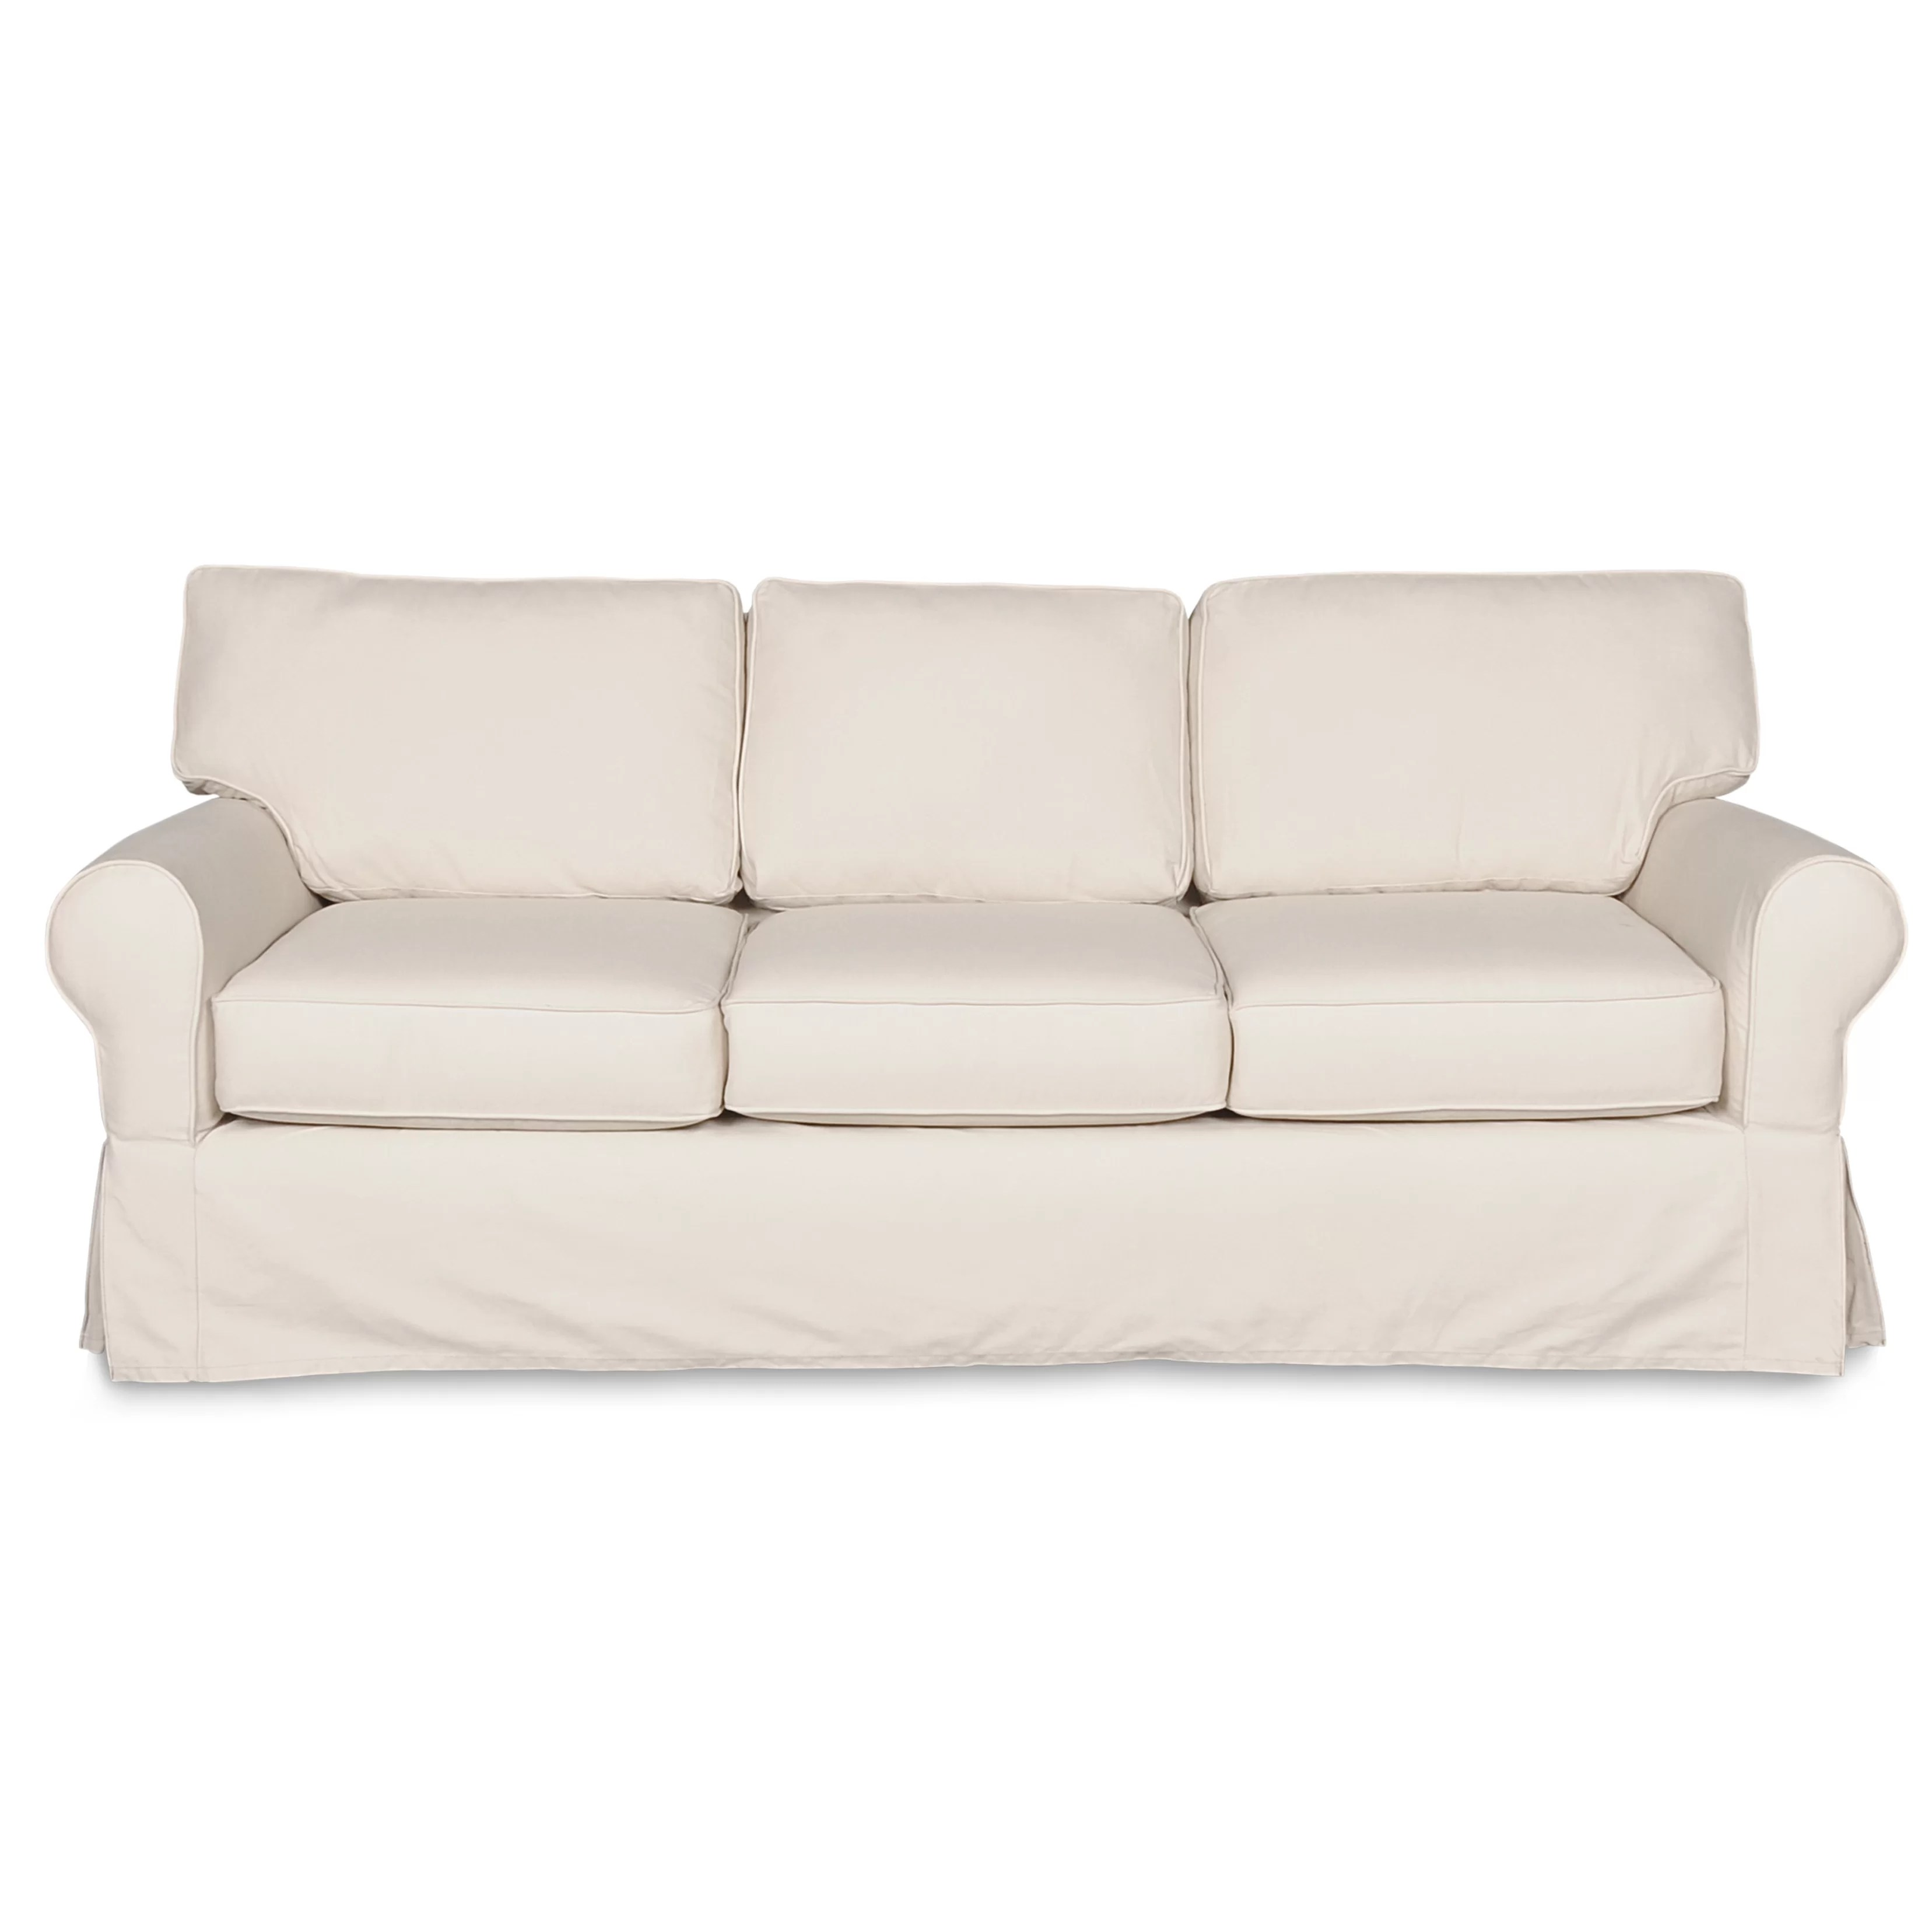 sofas at wayfair best sofa for cats with claws darby home co slipcover and reviews